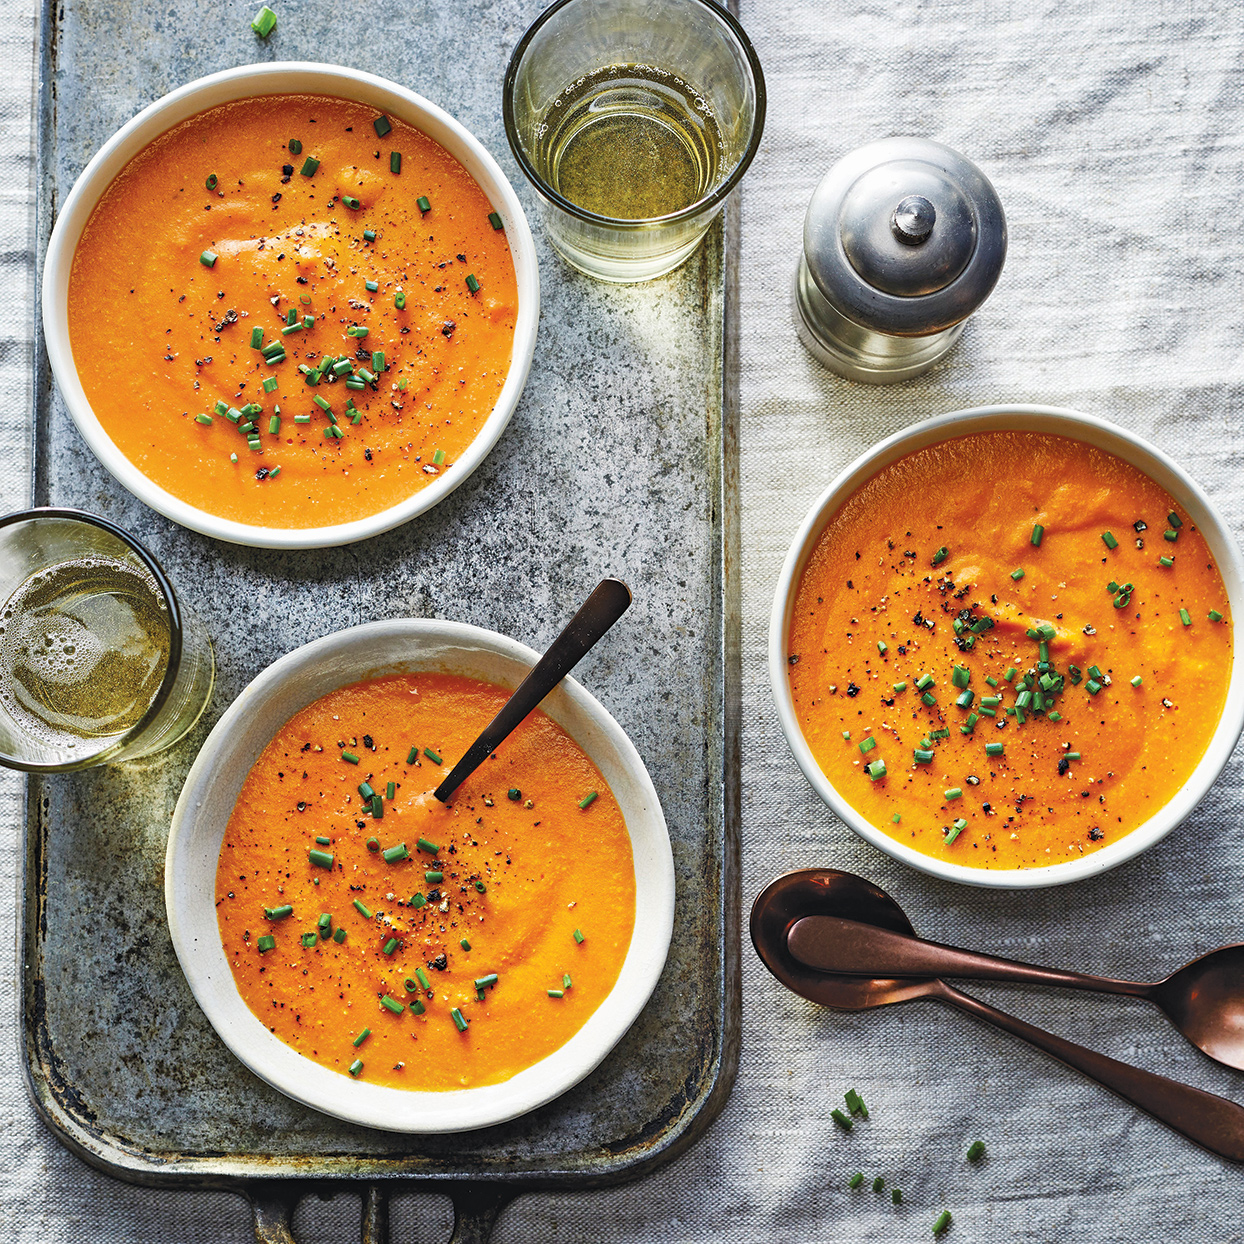 Creamy and delicate slow-cooker carrot soup is a welcome appetizer. The addition of millet--a whole grain similar to quinoa--adds body to the soup as well as protein and fiber. Garnish with additional black pepper, if desired.